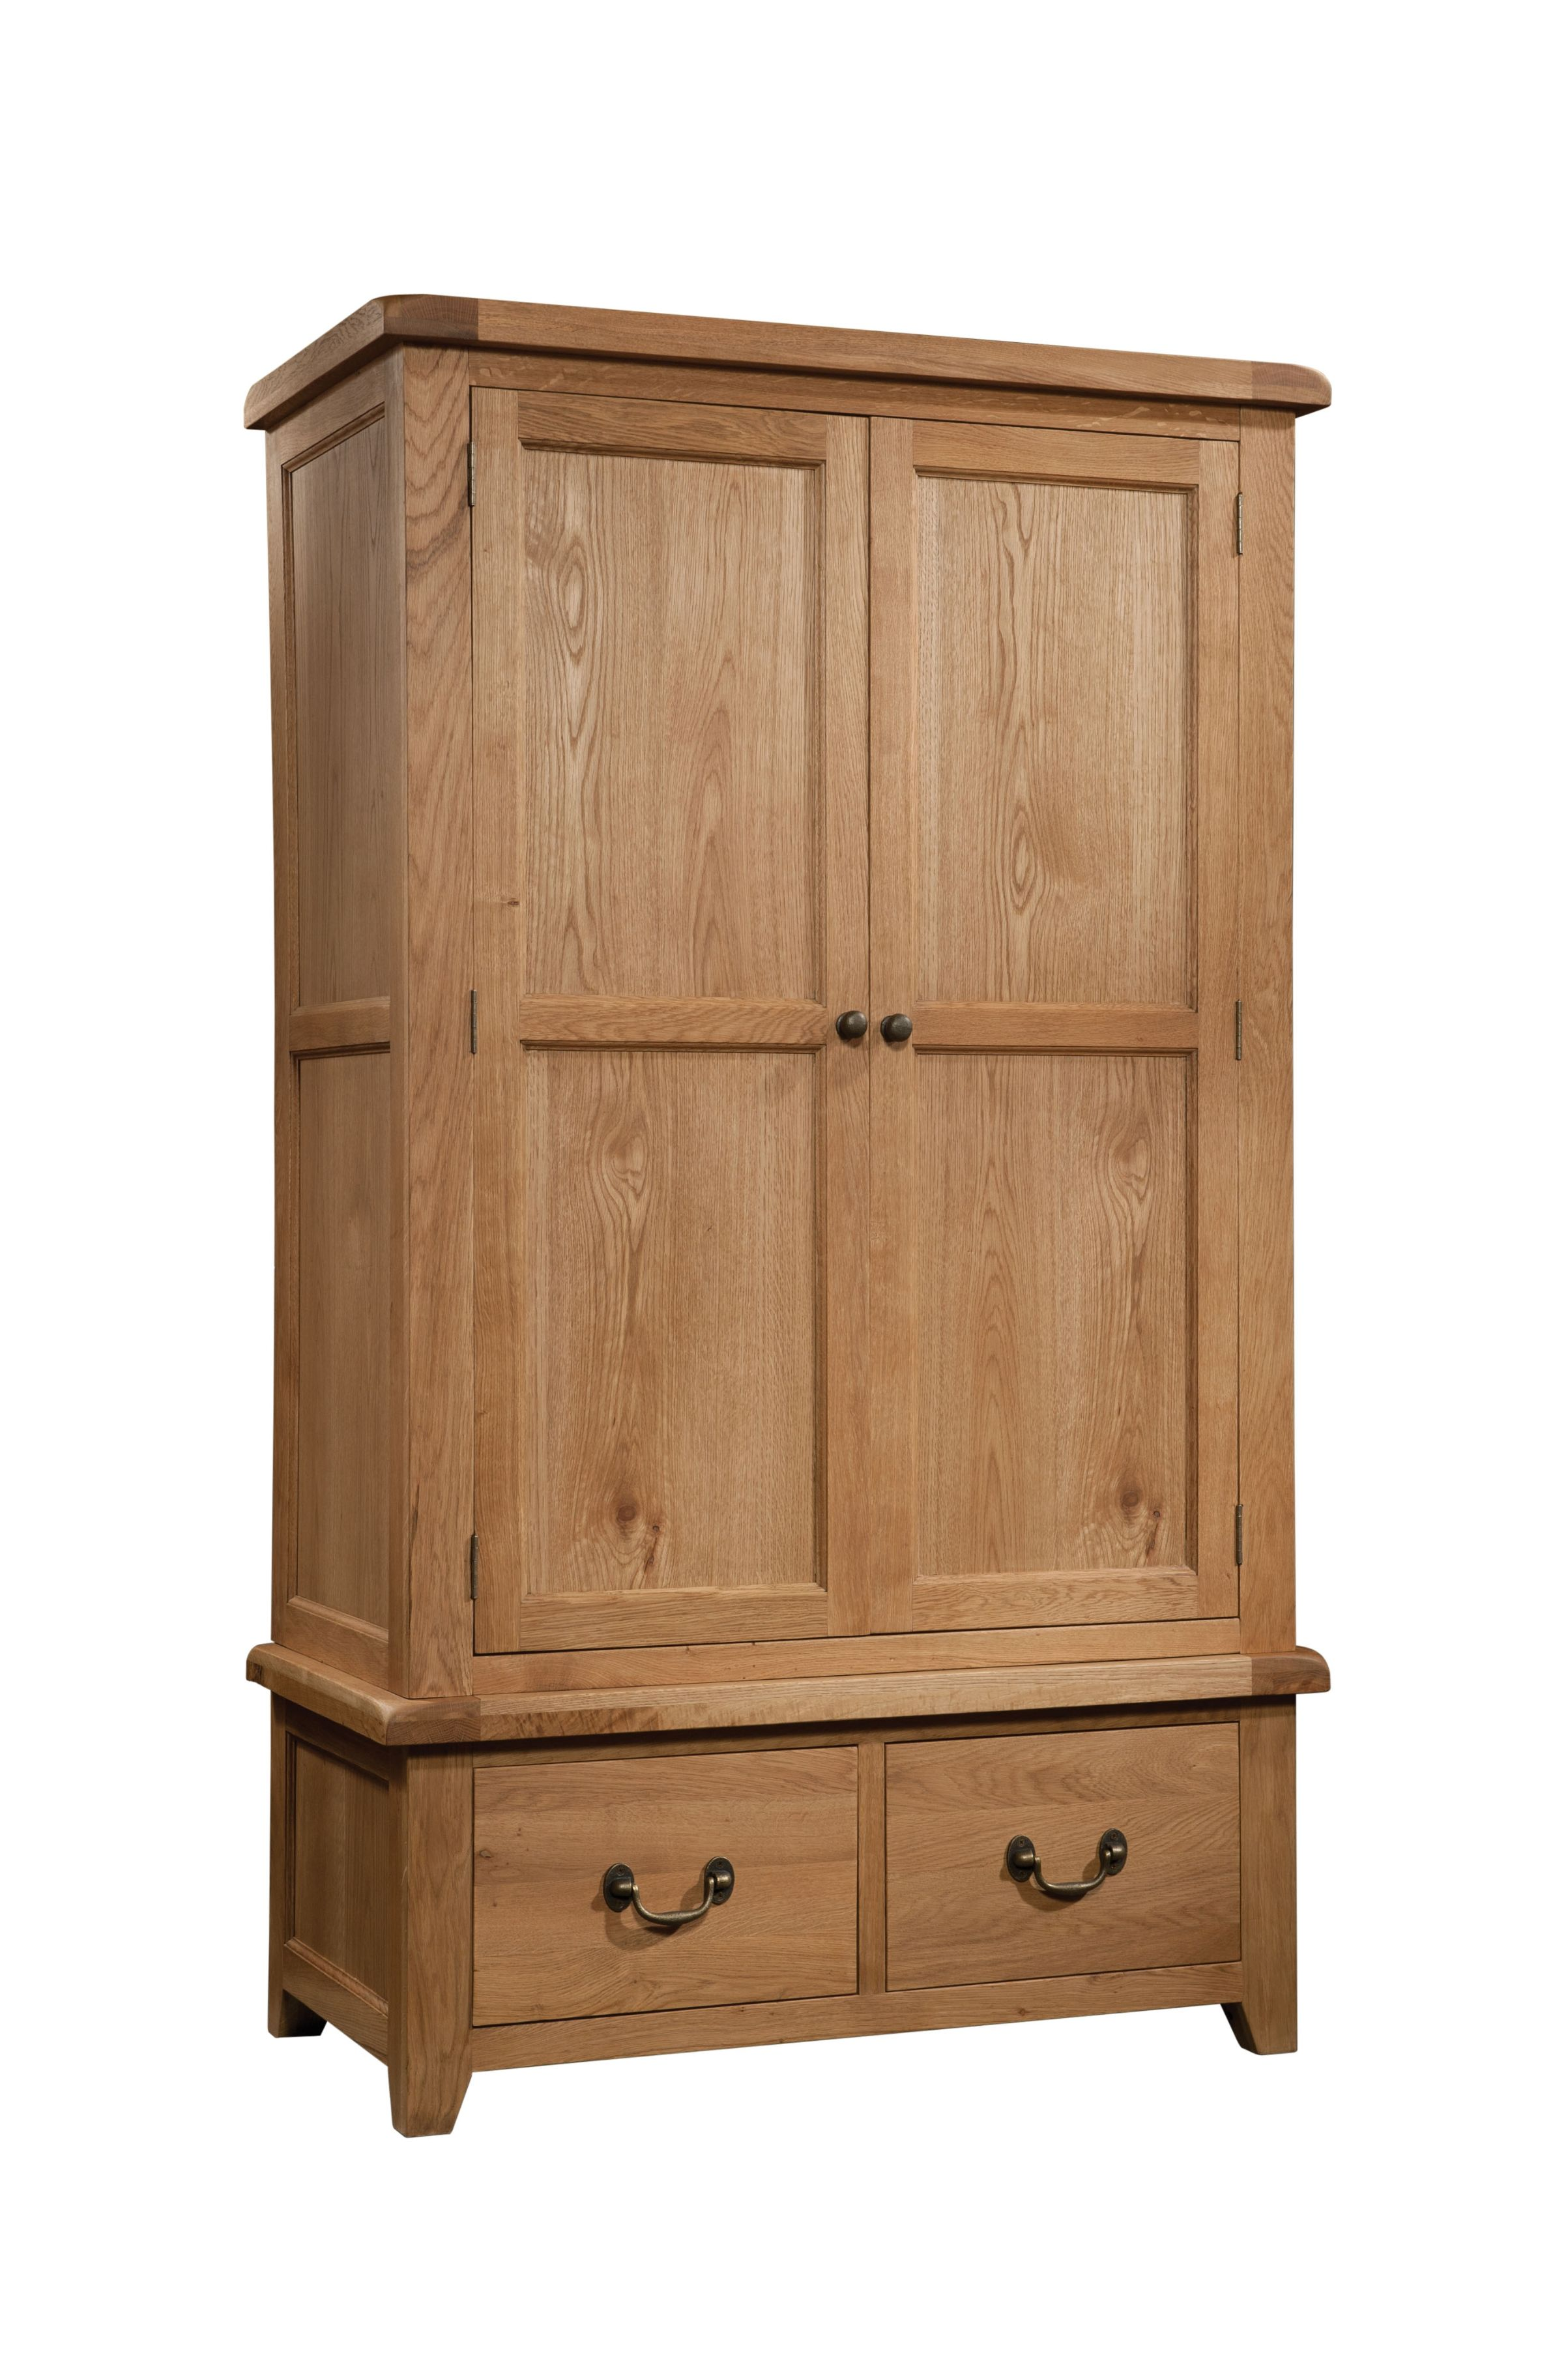 SUMMERFIELD Double Wardrobe with 2 Drawers